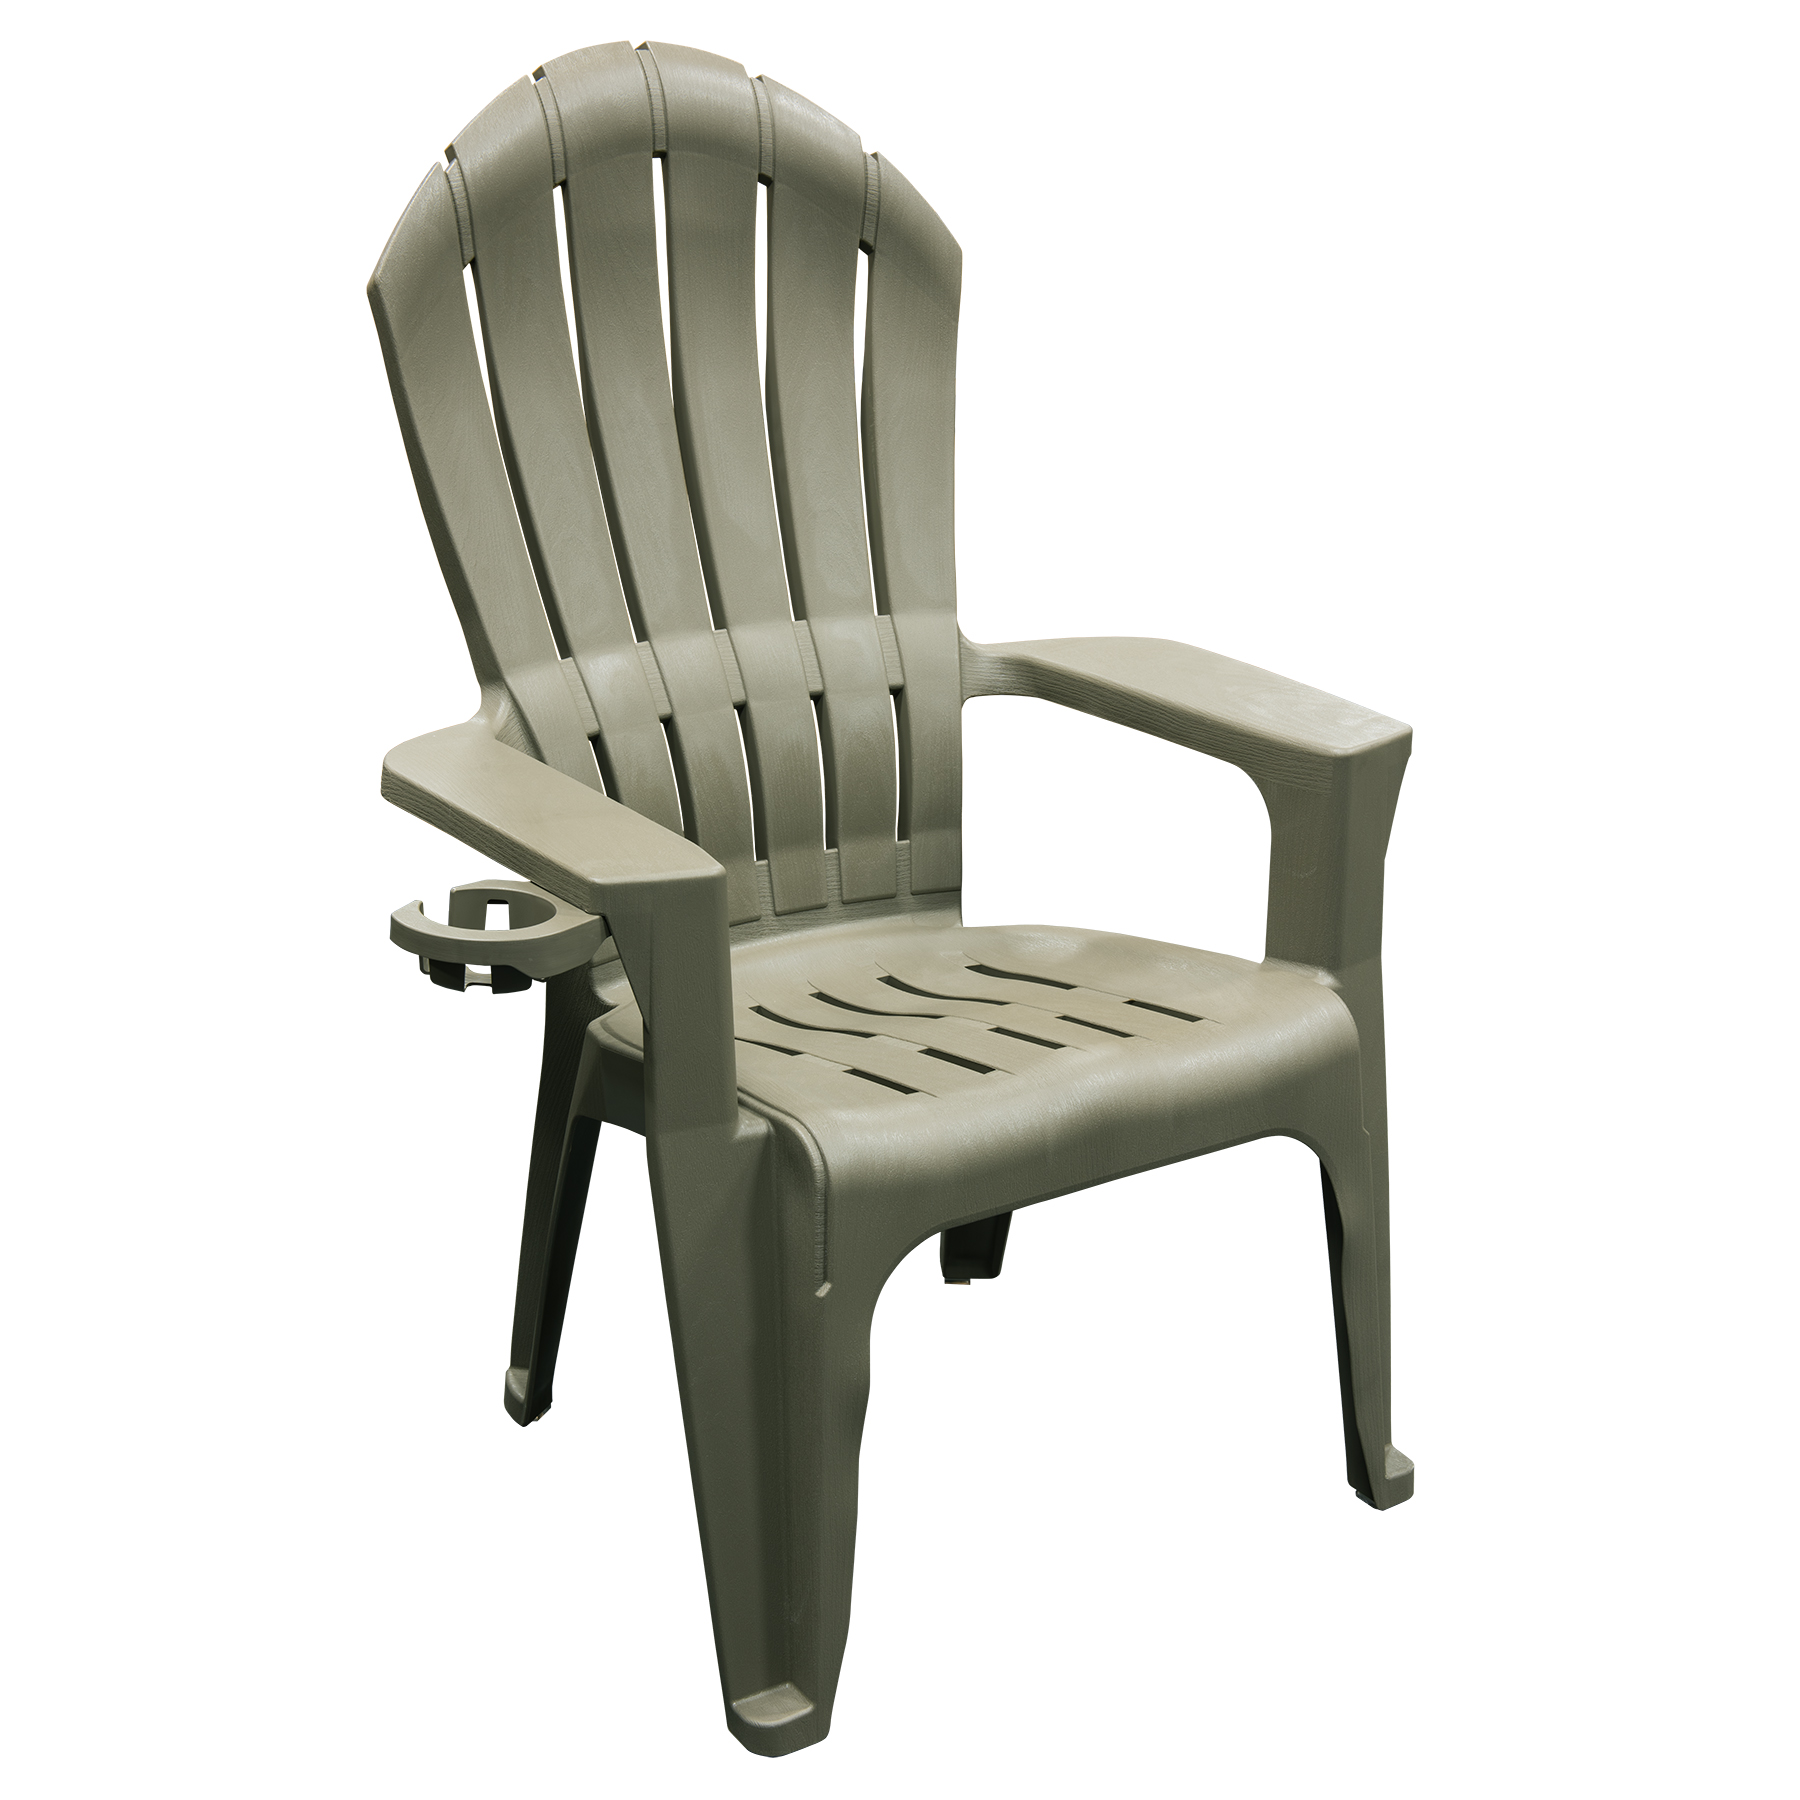 Adams Mfg Corp Big Easy Adirondack Chair - Gray